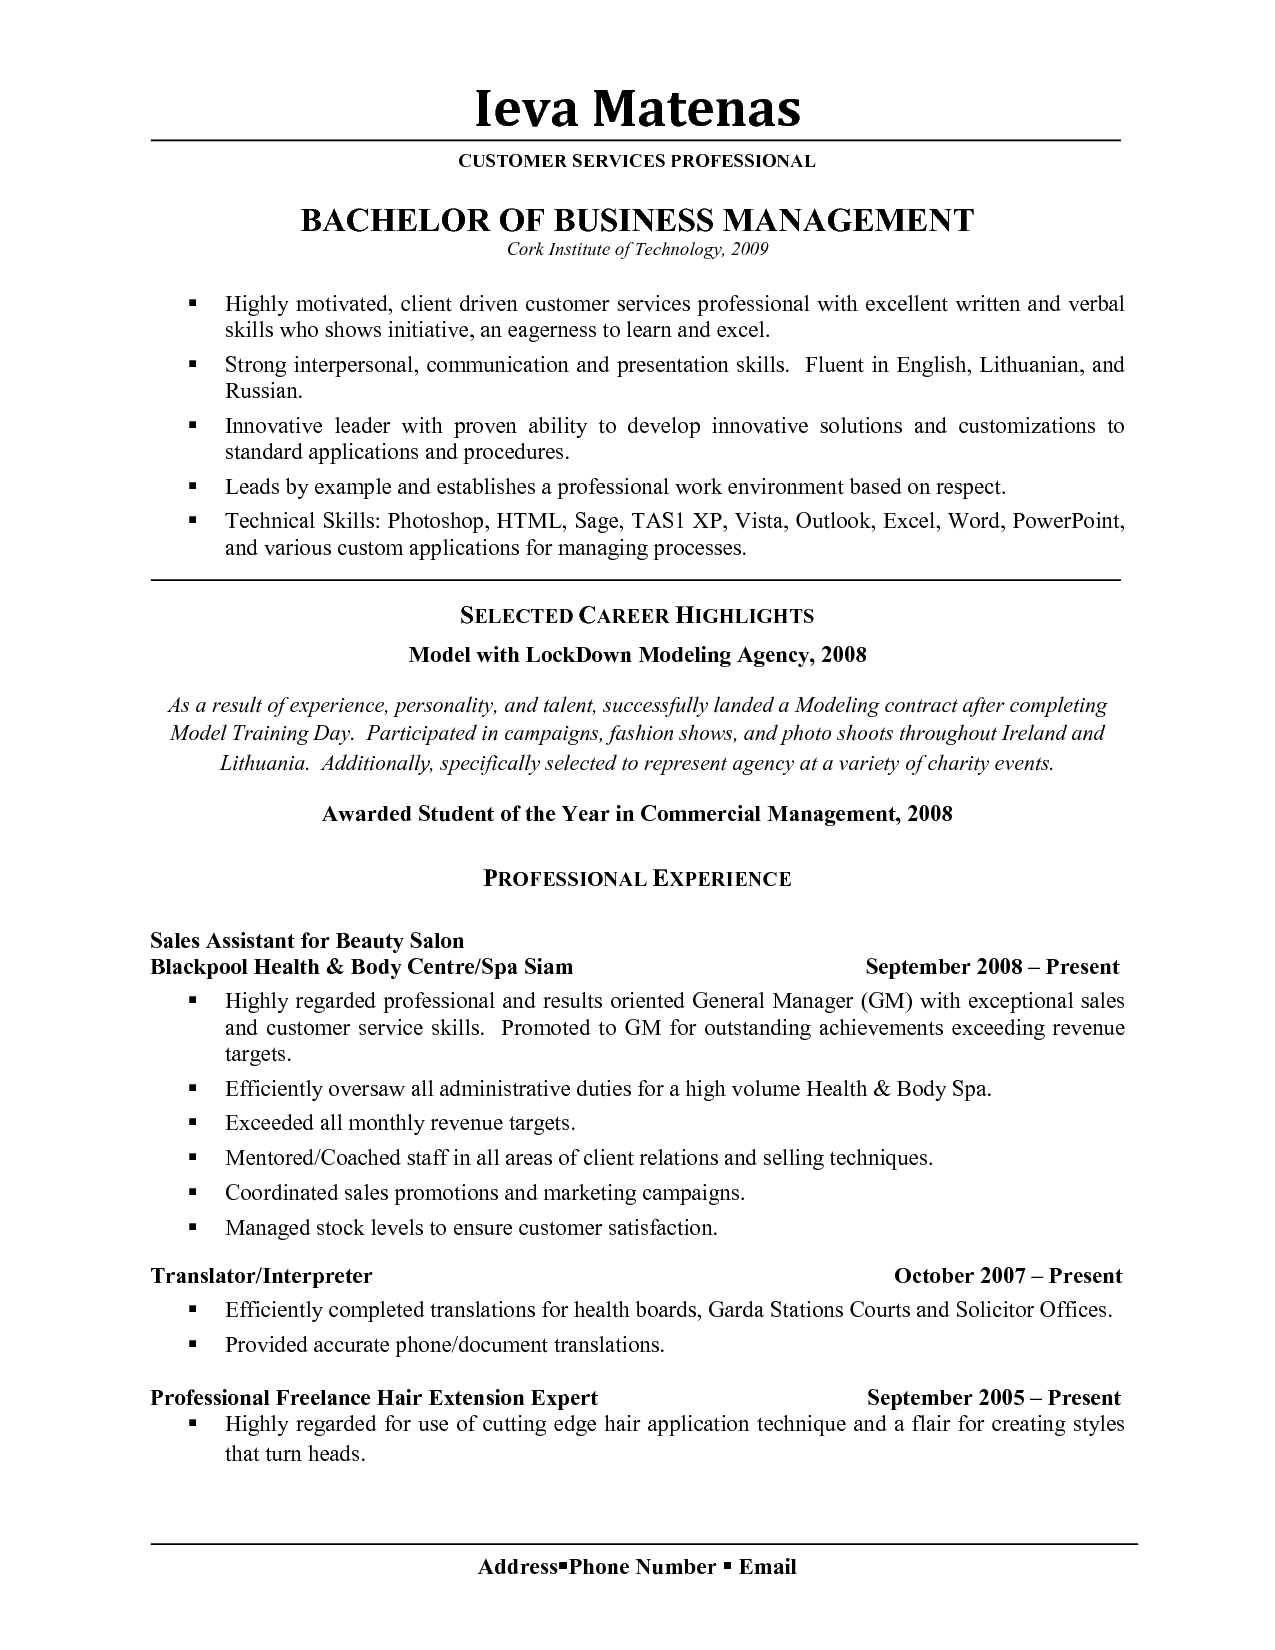 Production Supervisor Resume Excellent Receptionist Resume  Document Sample  Resume Design